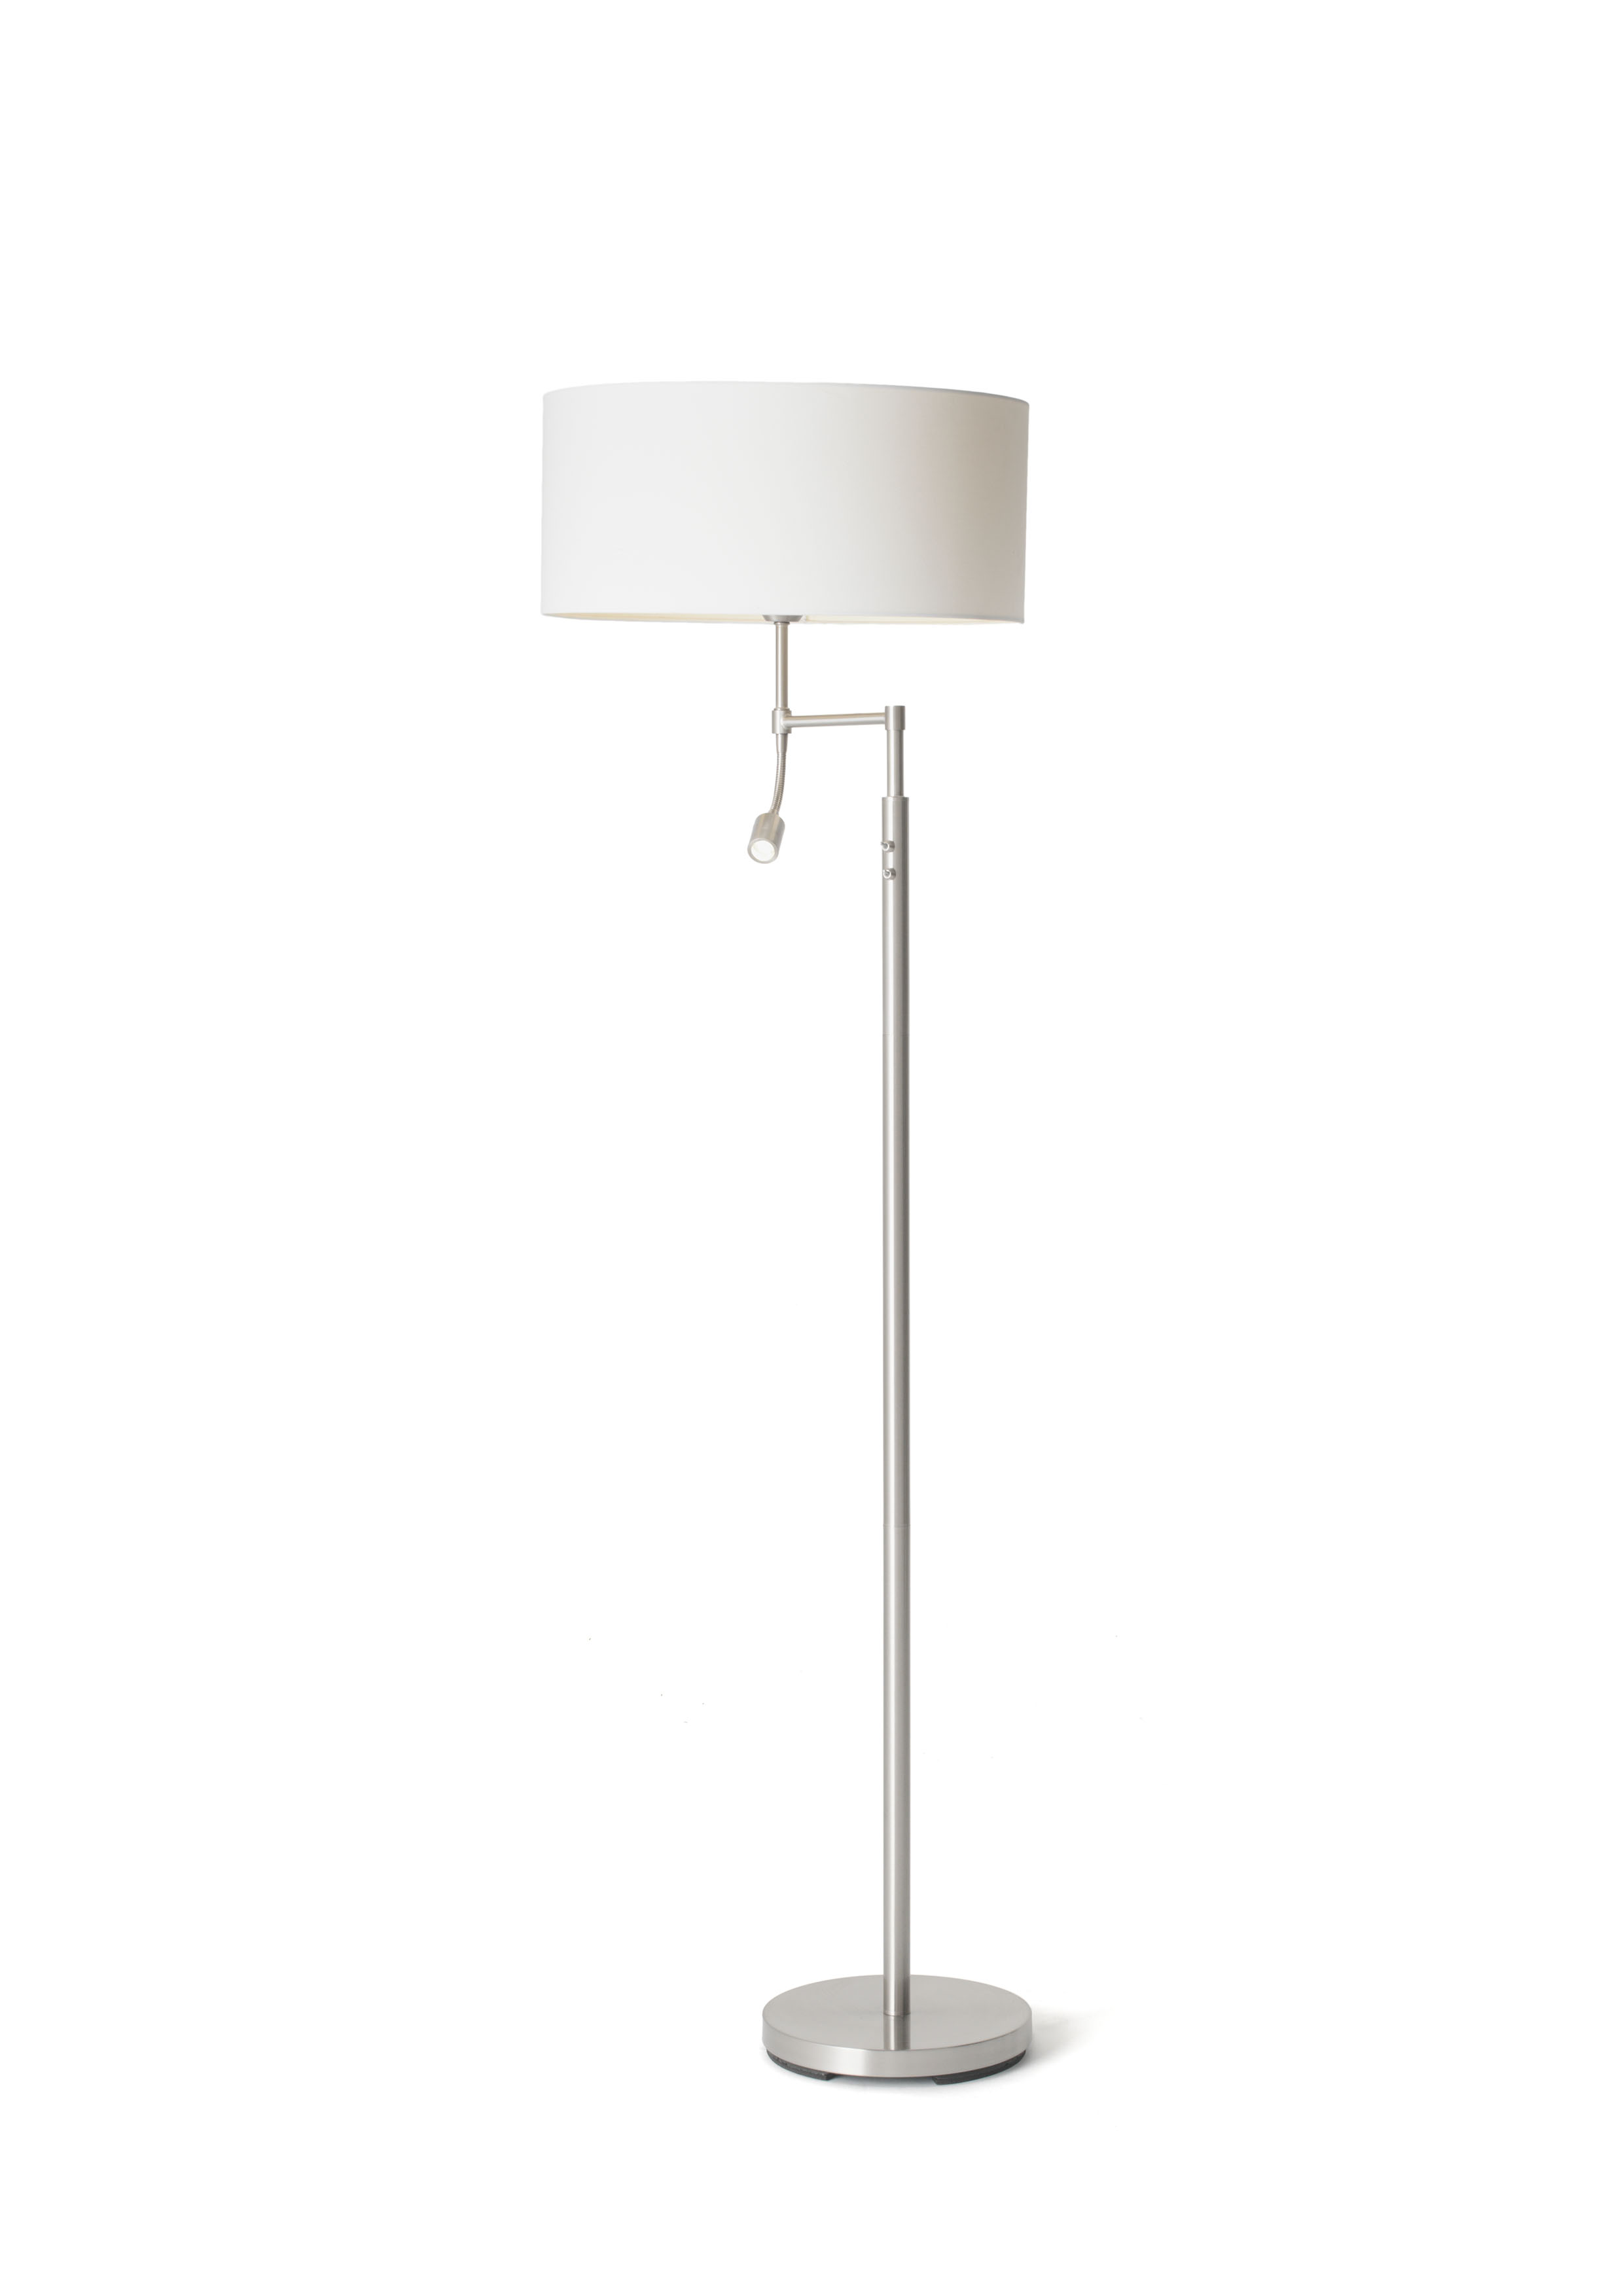 Oslo Floor Lamp W/shade : White-0